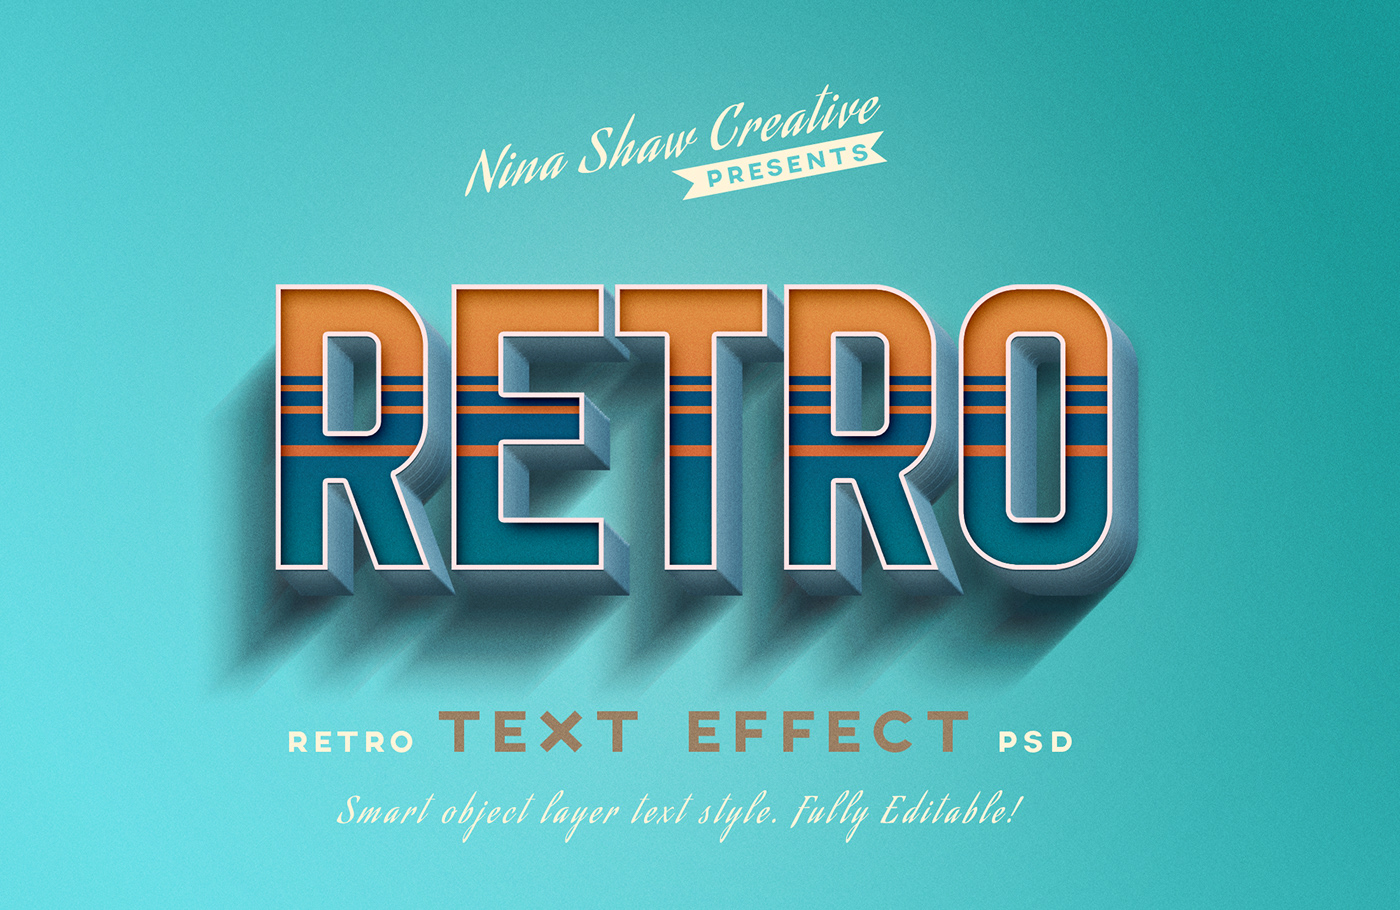 Retro/Vintage Text Effects on Behance